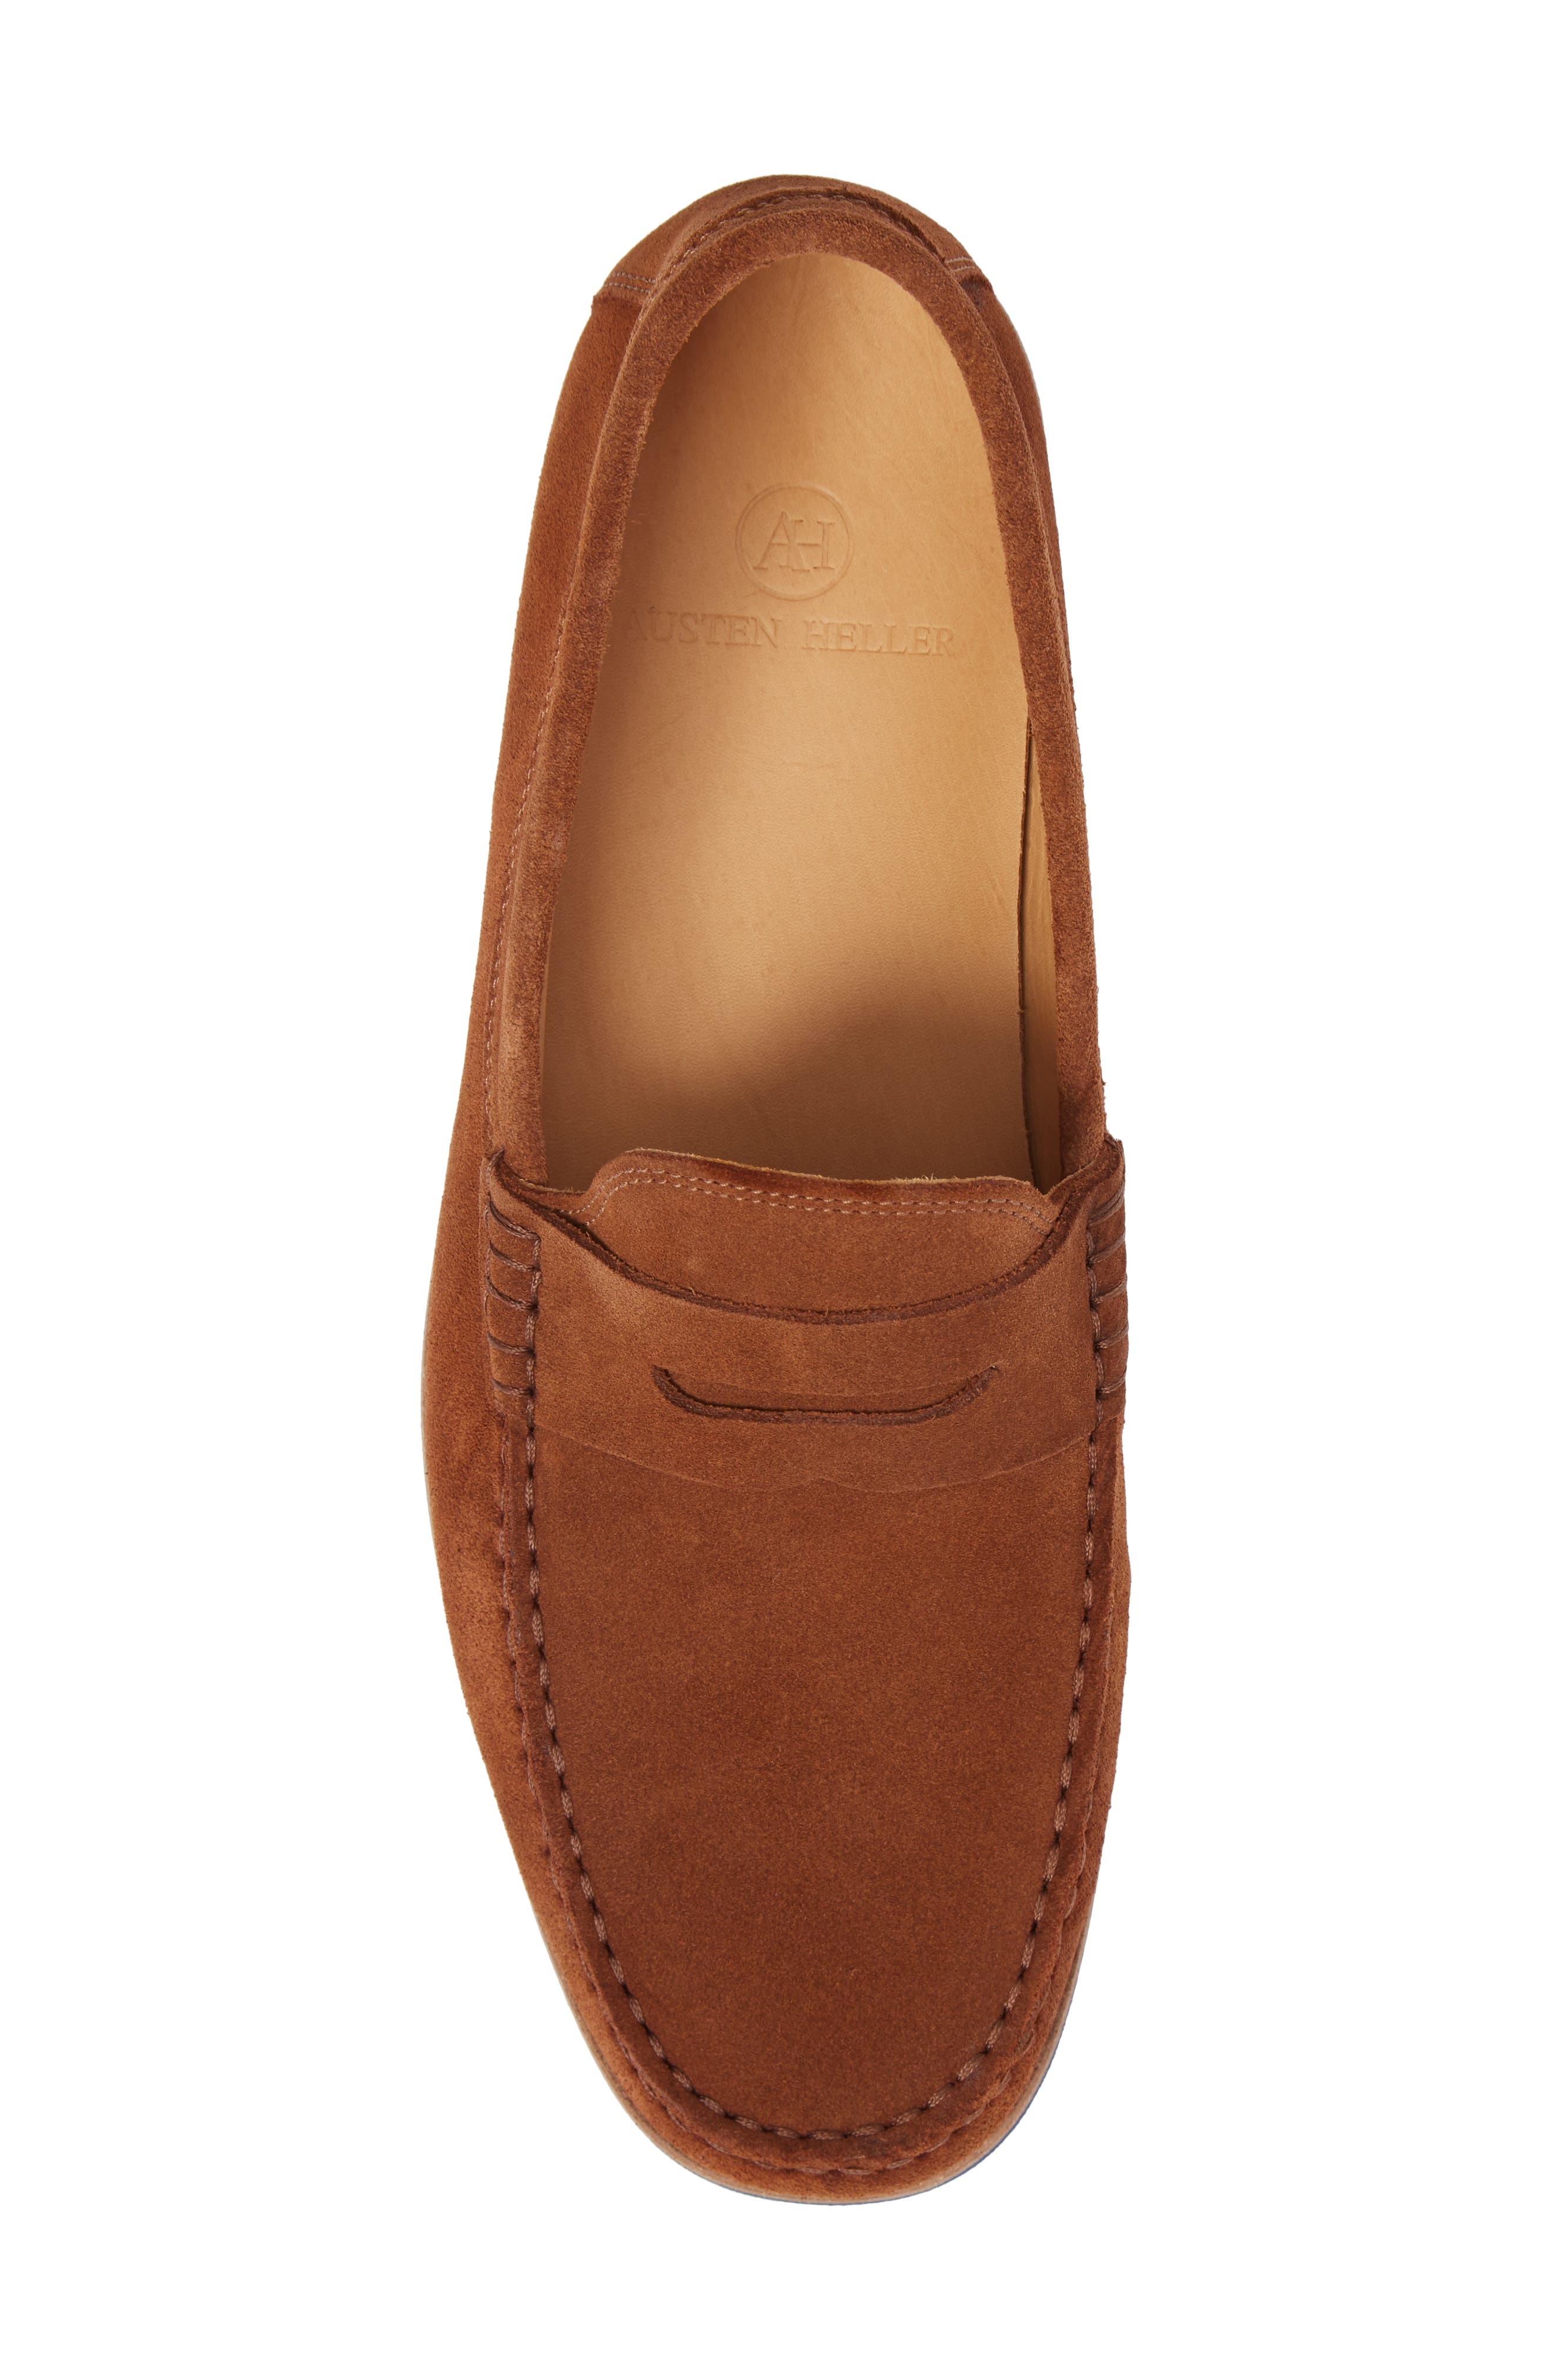 Kennedy Penny Loafer,                             Alternate thumbnail 5, color,                             MEDIUM BROWN SUEDE